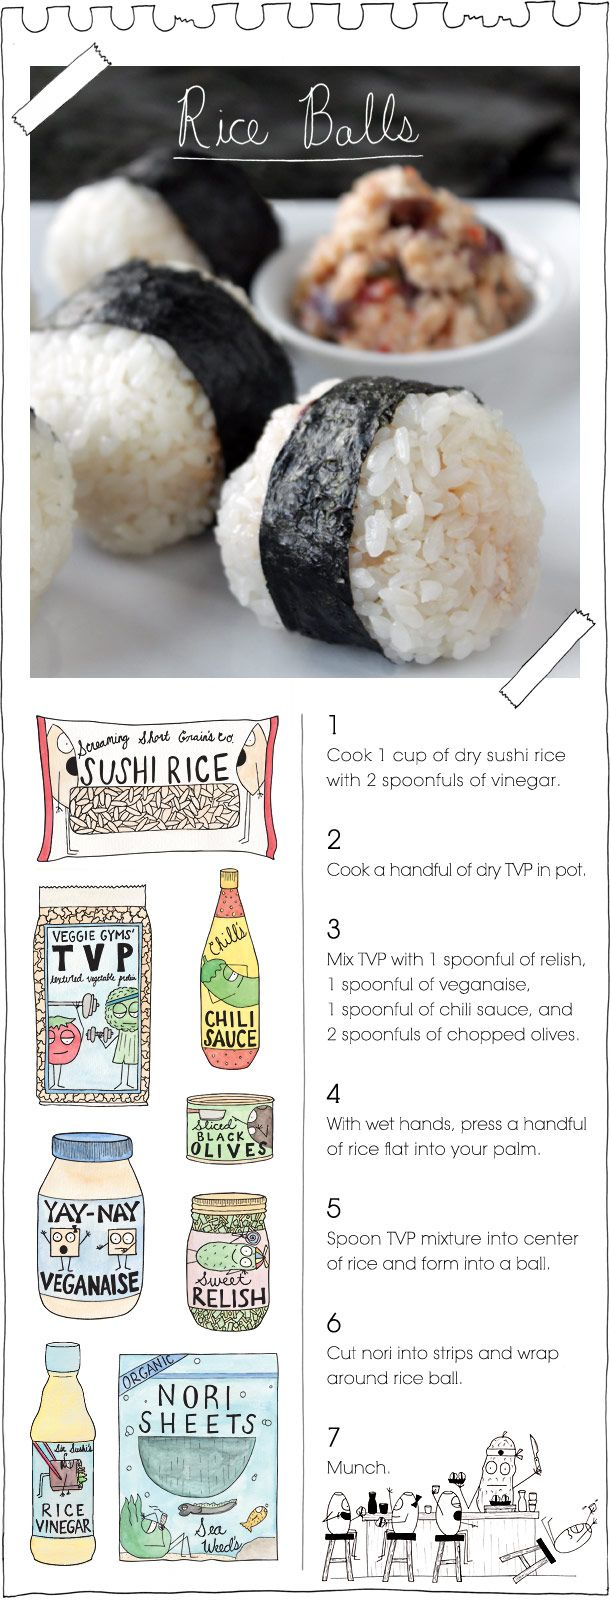 vegan rice balls....maybe subbing out some vegan stuff for the real deal?